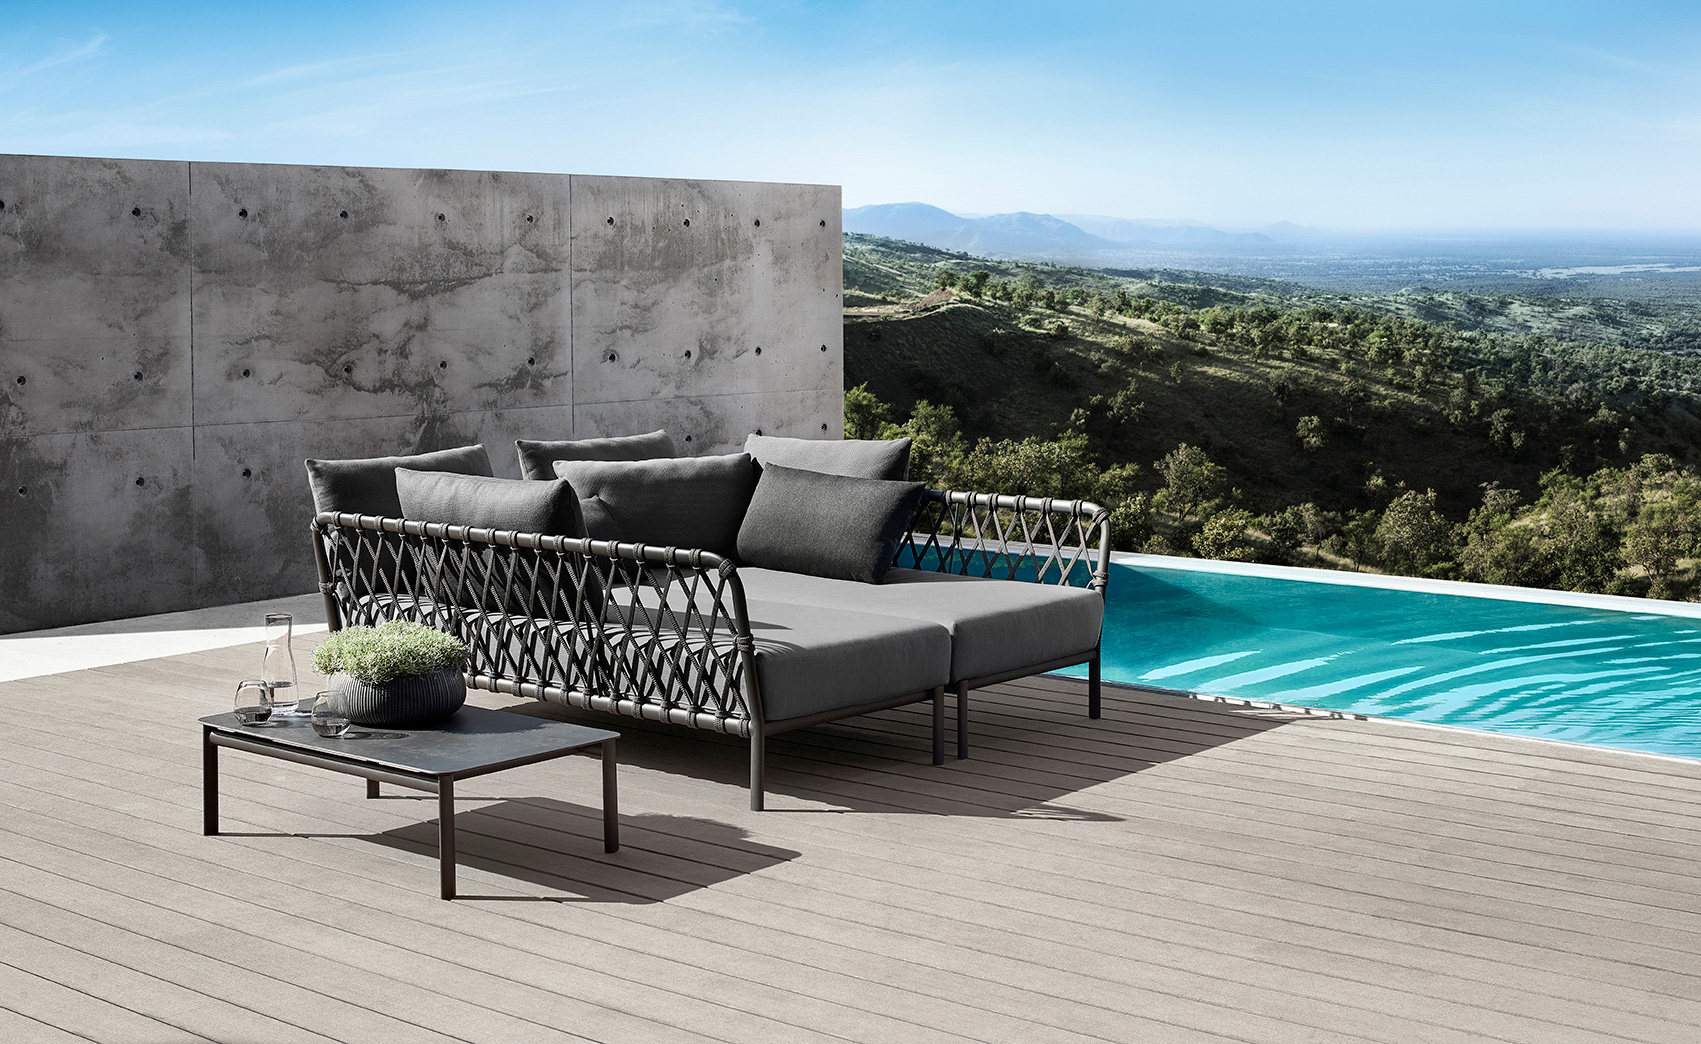 Solpuri Outdoor Lounge Luxury Poolside Furniture.jpg